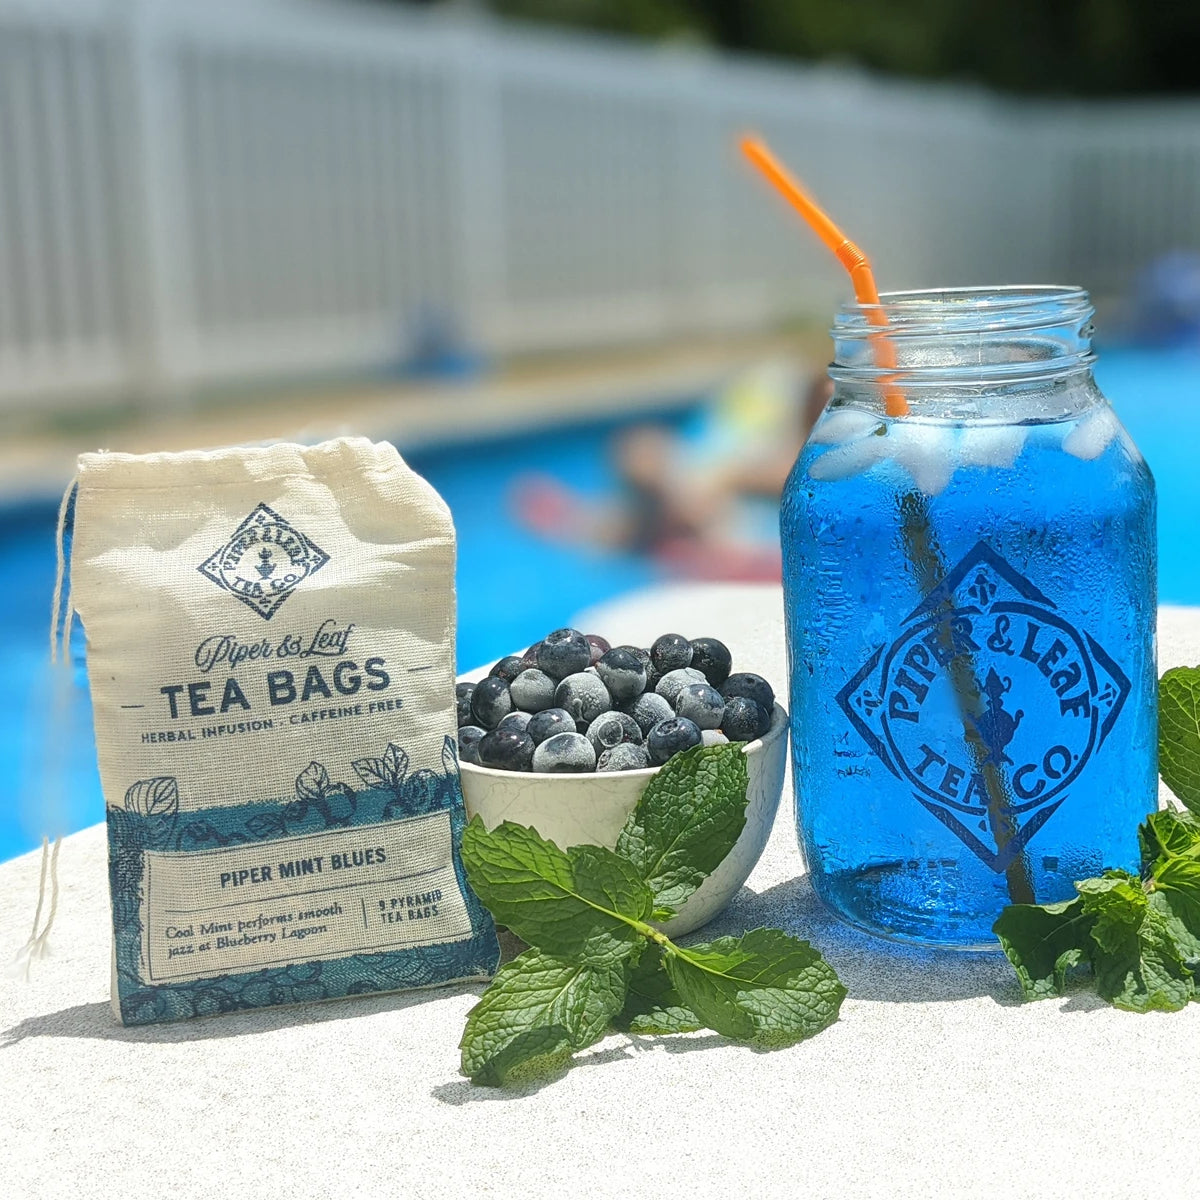 A bag of Piper Mint Blues, blueberries, mint, and a jar of blue iced tea